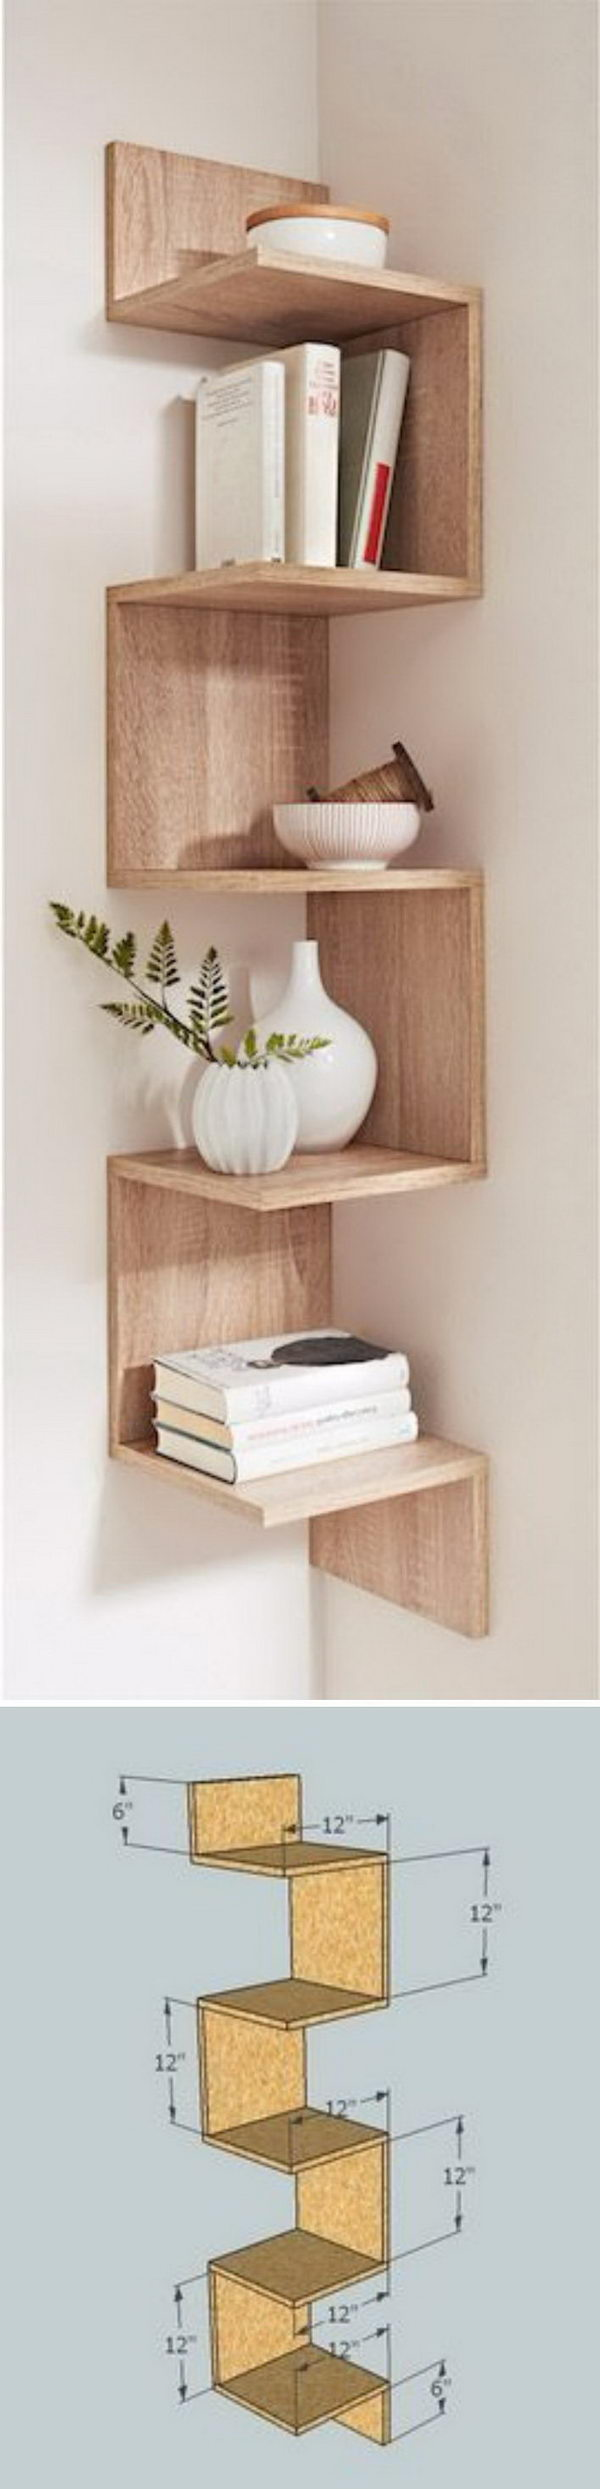 DIY Corner Shelves.